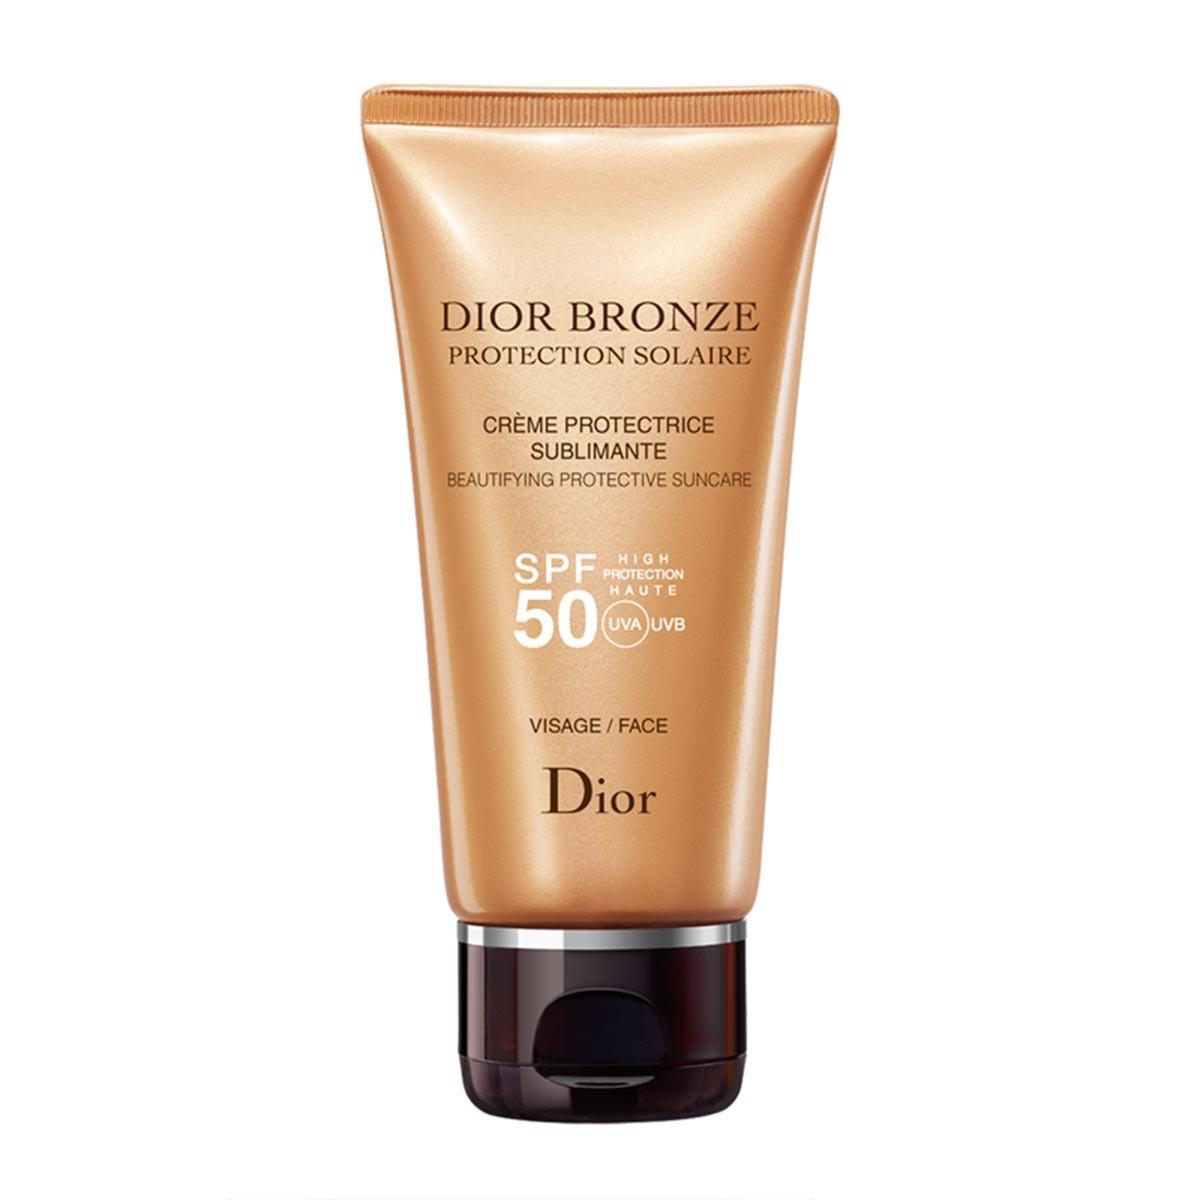 Christian dior fragrances Bronze Protective Creme Sublime Glow Face Spf50 50ml